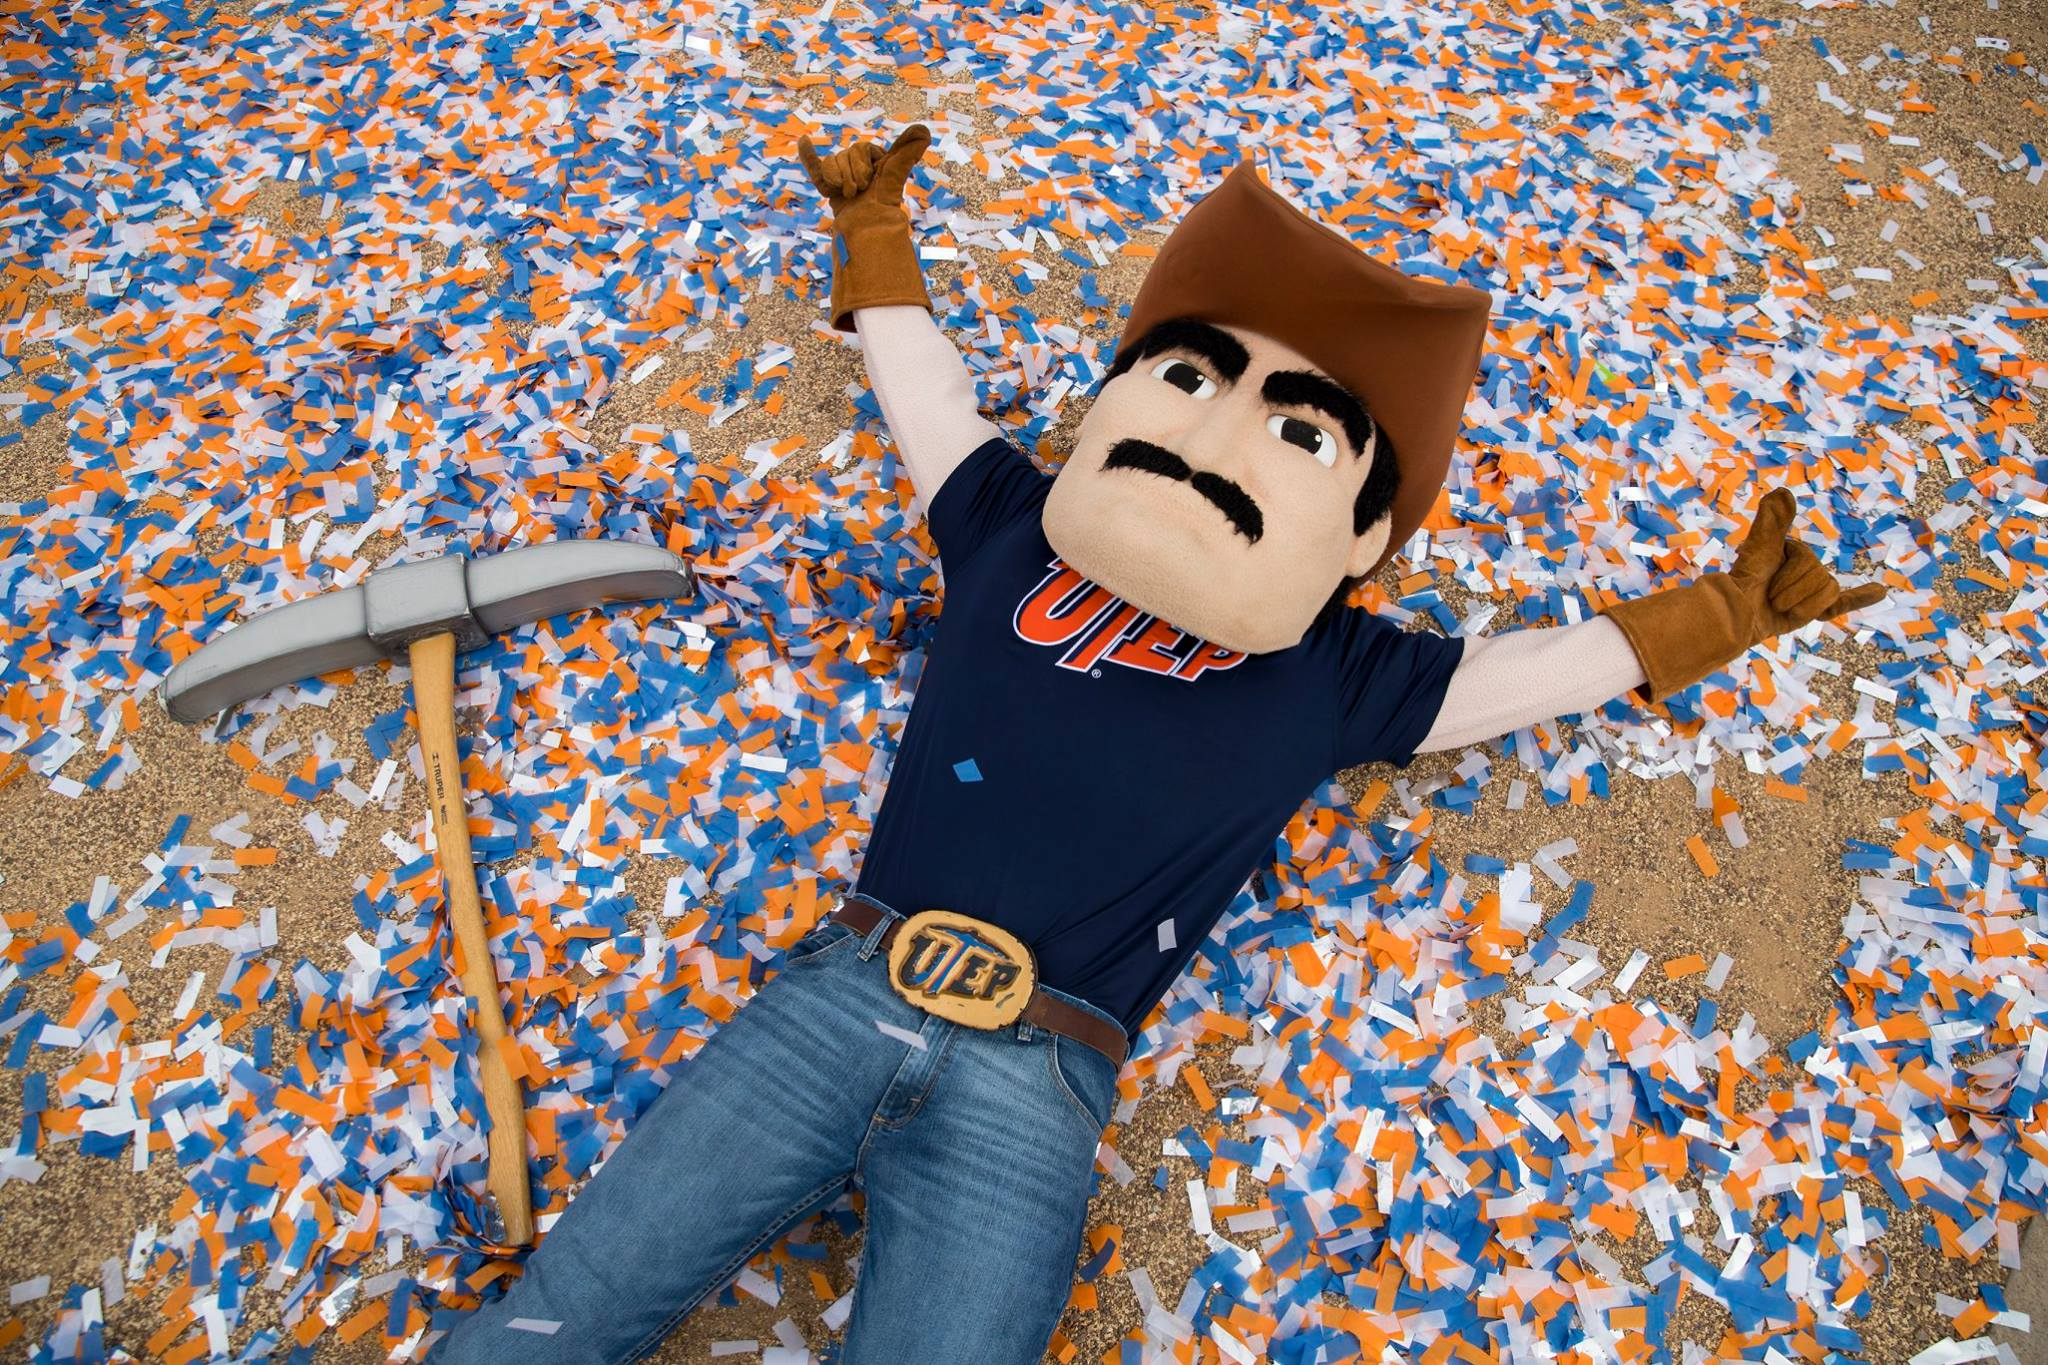 Paydirt Pete makes a confetti angel at UTEP's celebration of its R1 designation from the Carnegie Classification of Institutions of Higher Education on Jan. 29 in Centennial Plaza. Students, faculty and staff gathered to as President Diana Natalicio spoke about the distinctionUTEP Cheerleaders, the Marching Miners, and the Golddiggers joined in the celebration.